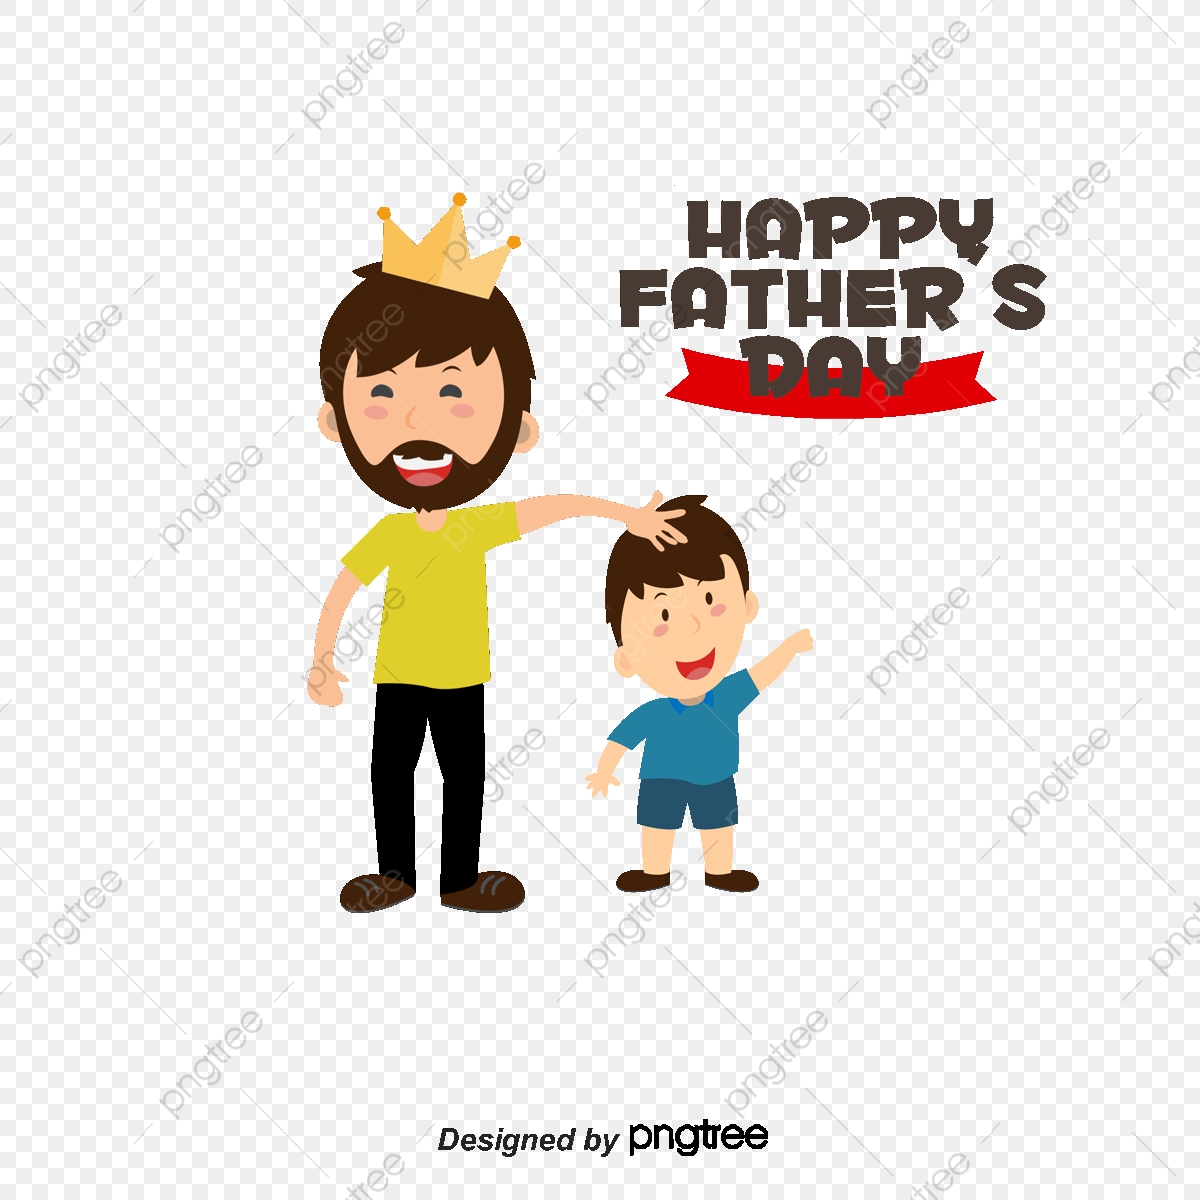 Father clipart me and my dad. Daddy vector material s